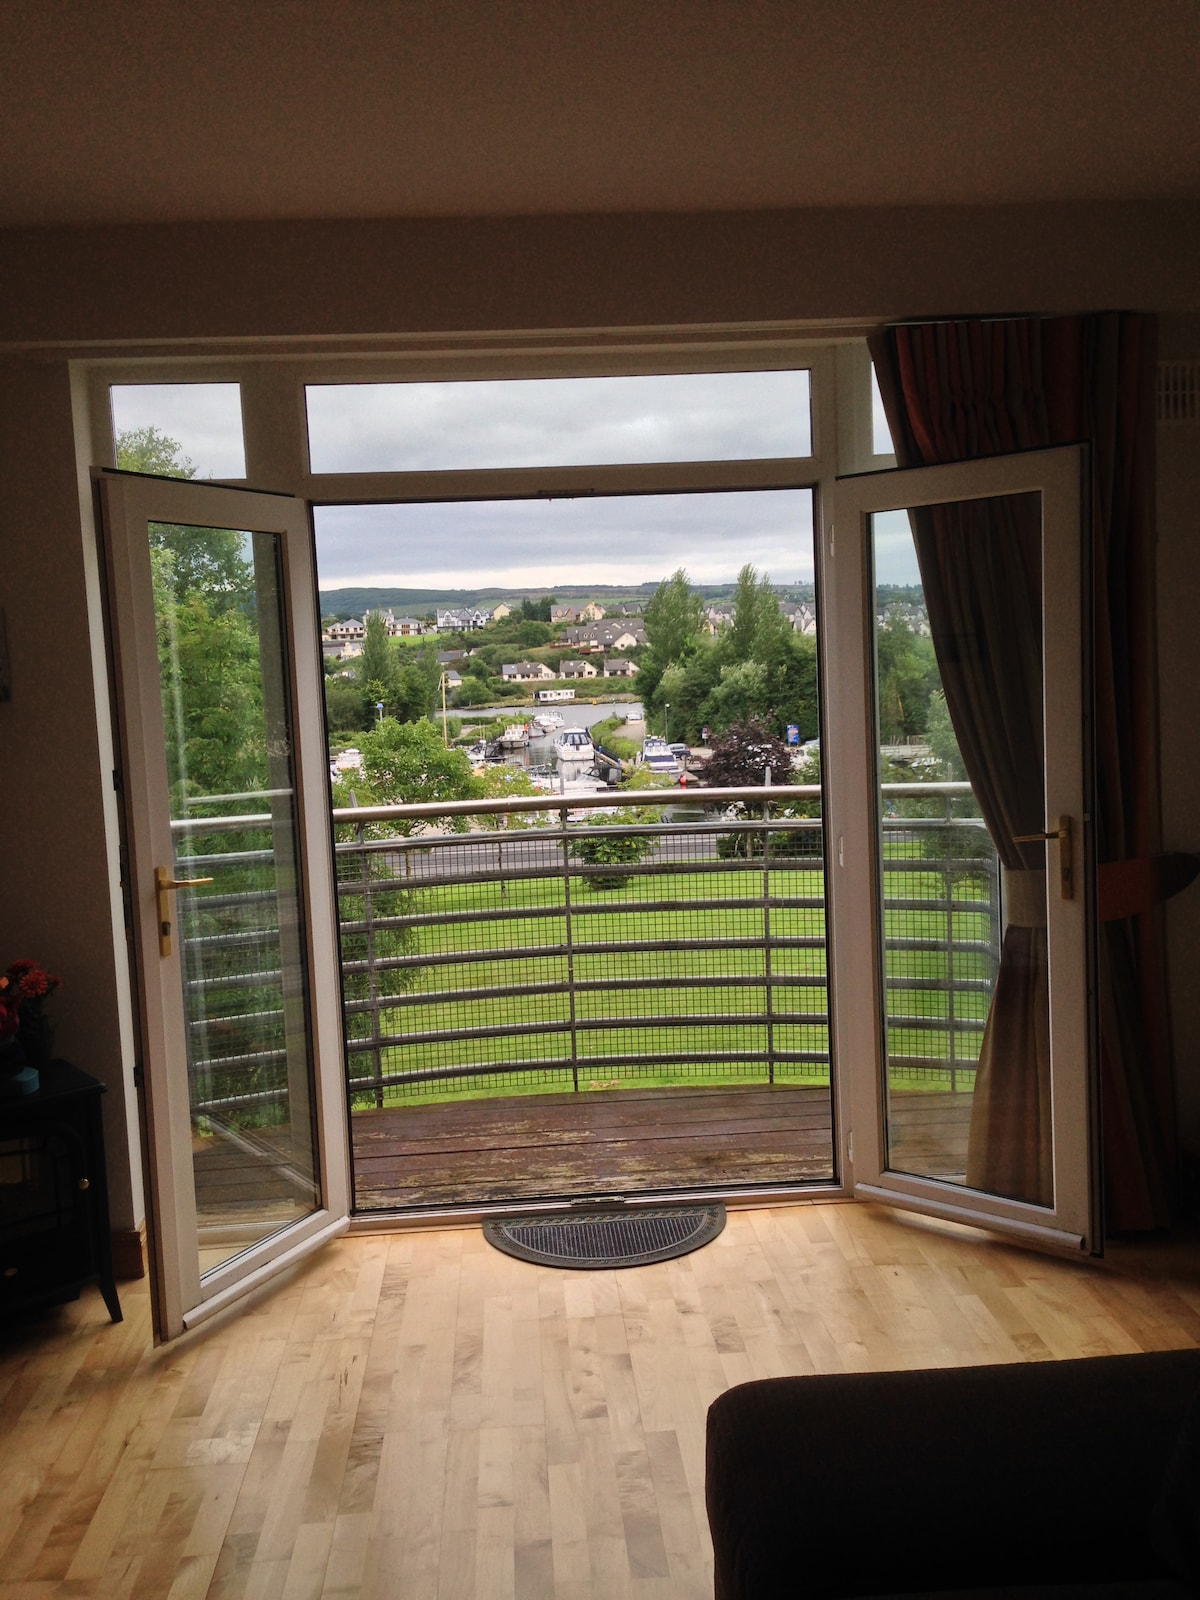 Large doors open onto balcony to view